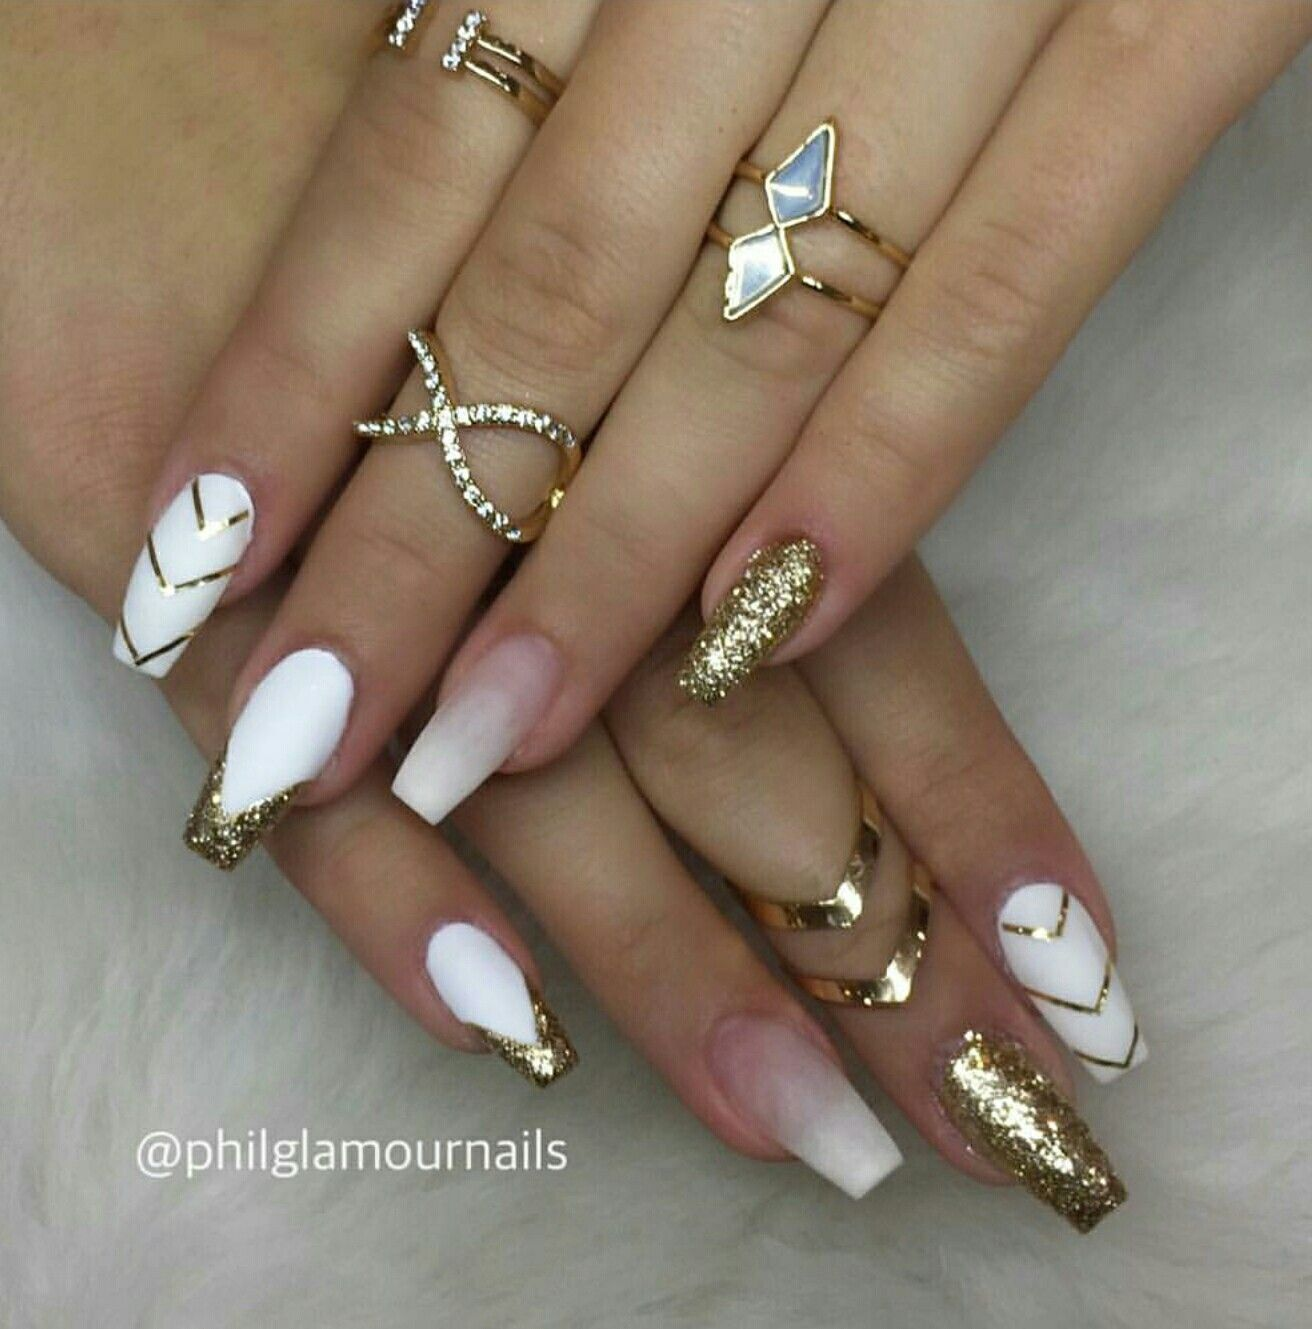 20 Festive Nail Art Ideas 1 Top Ideas To Try Recipes Hairstyles